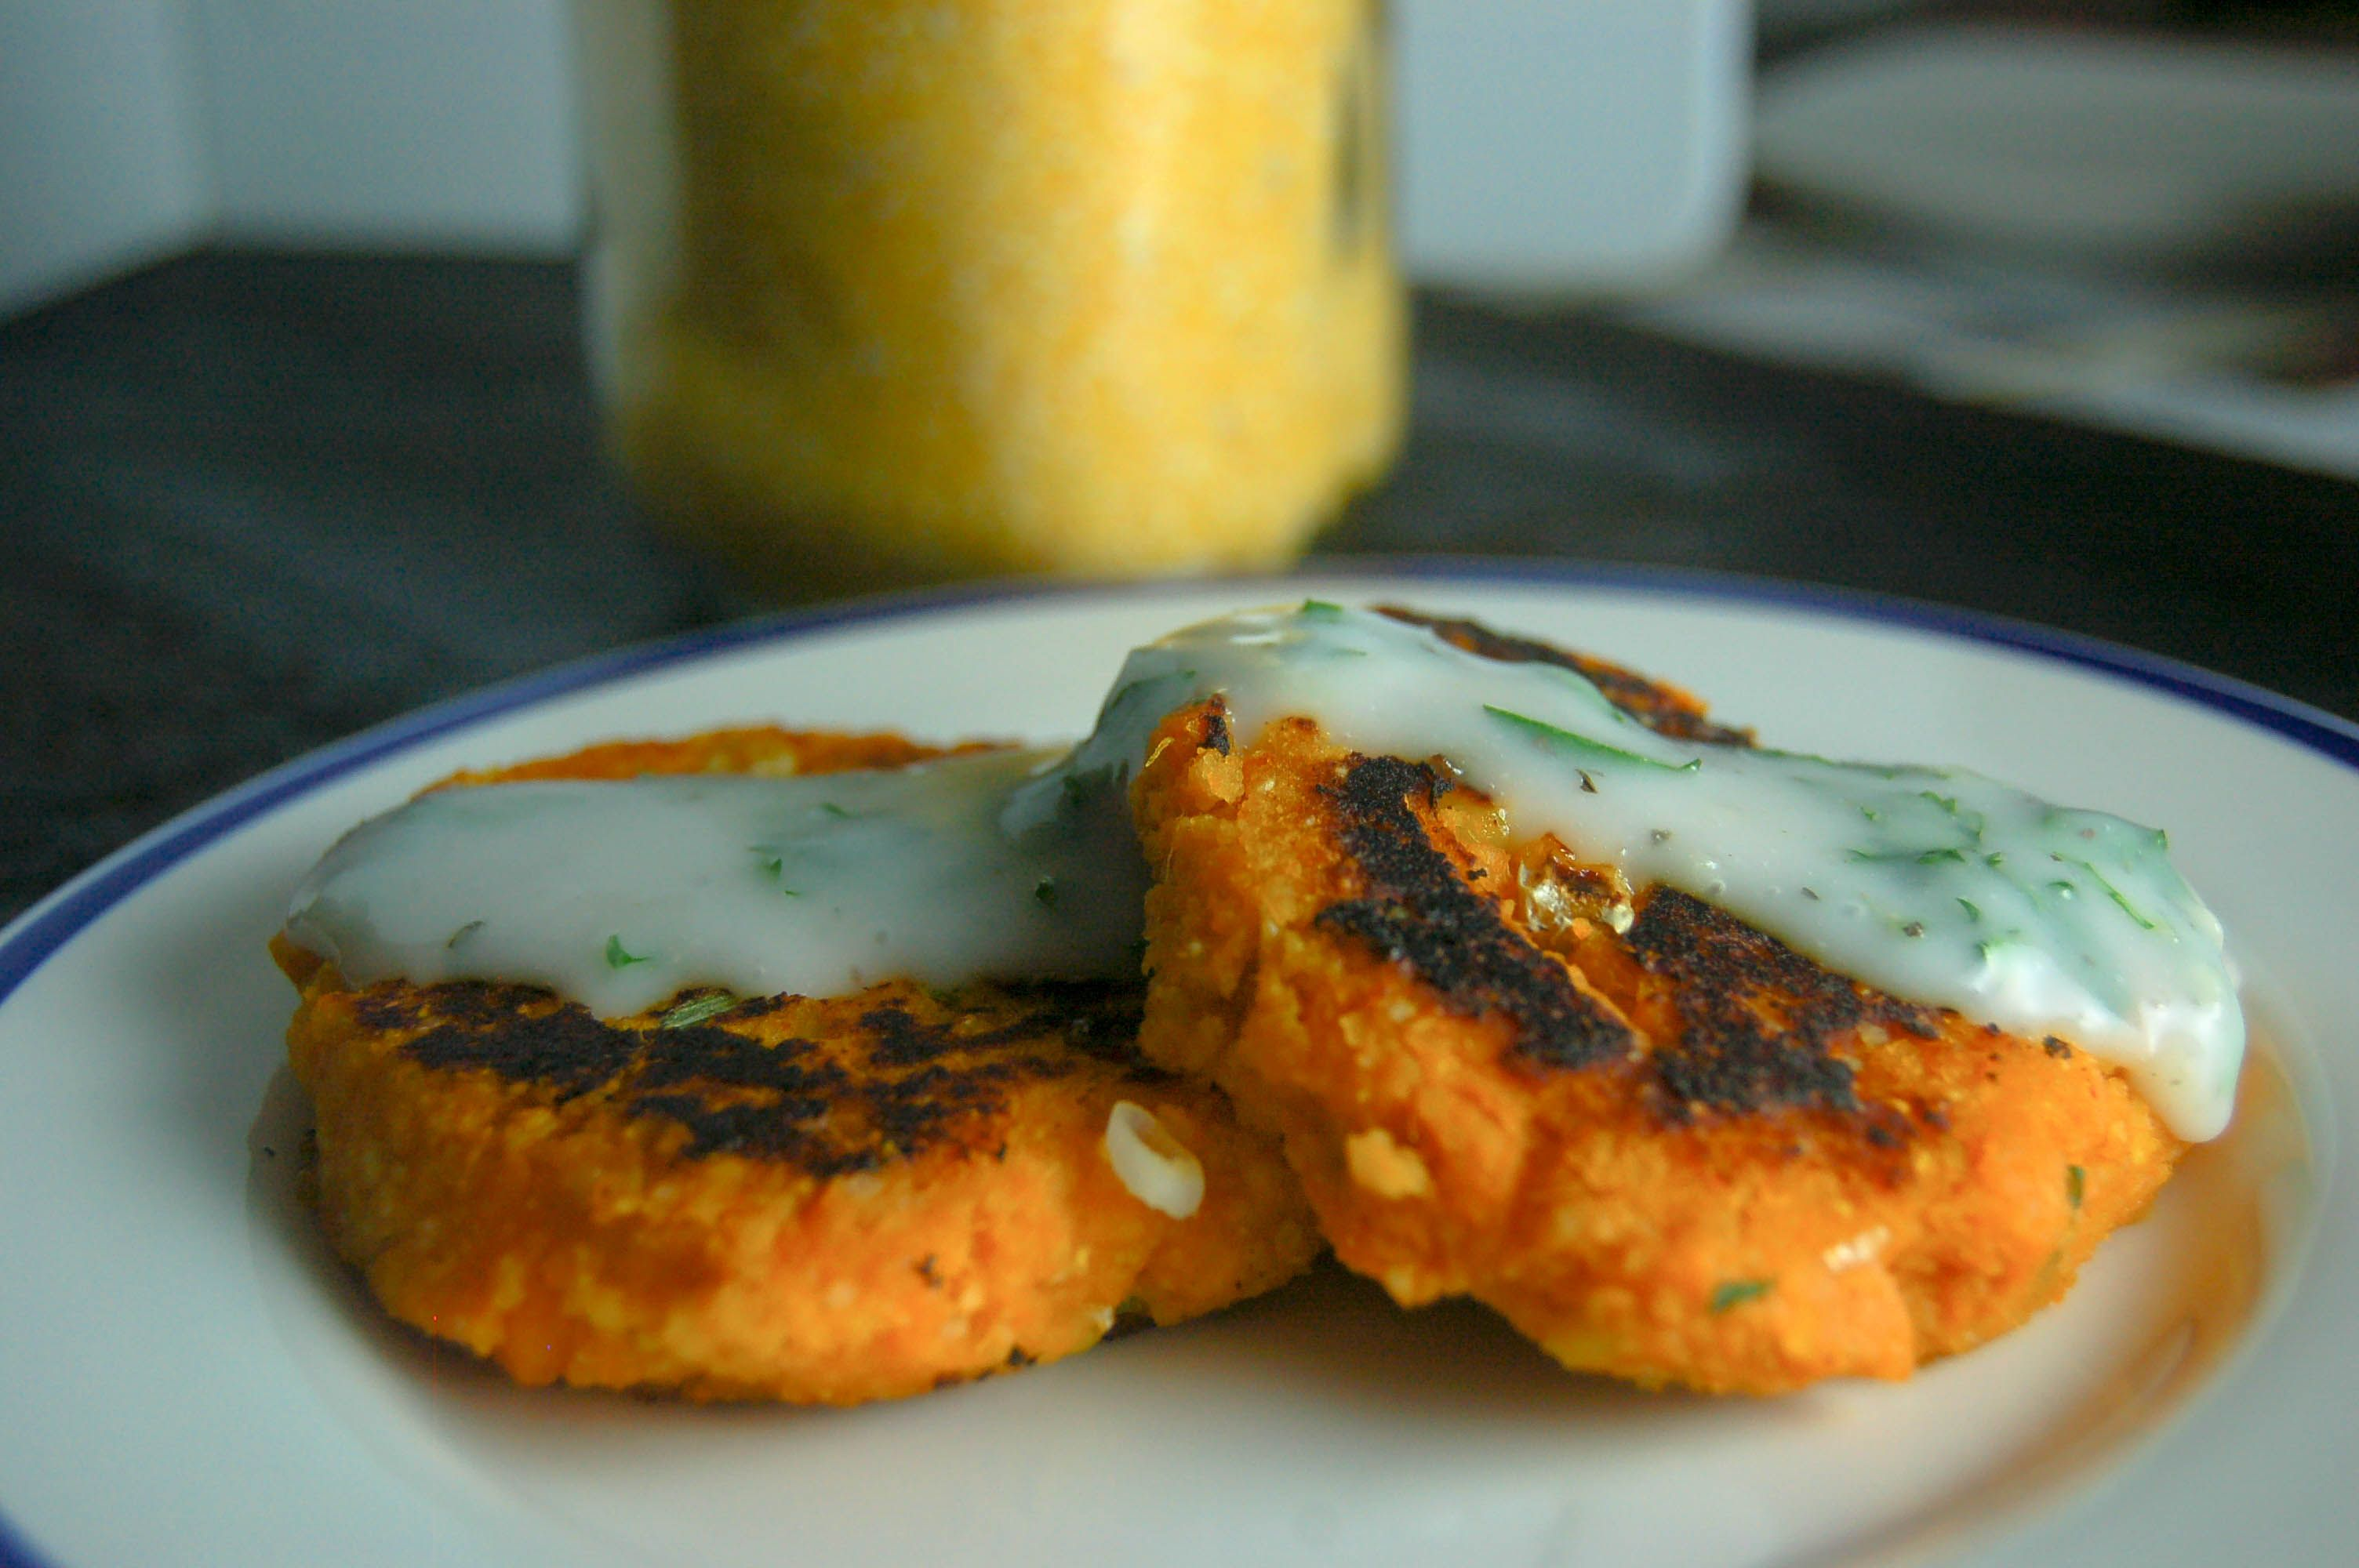 Sweet Potato Cakes w/ garlic dipping sauce!! Soooo good. #sweetpotato #healthyfood #lowfat #sidedish #quick